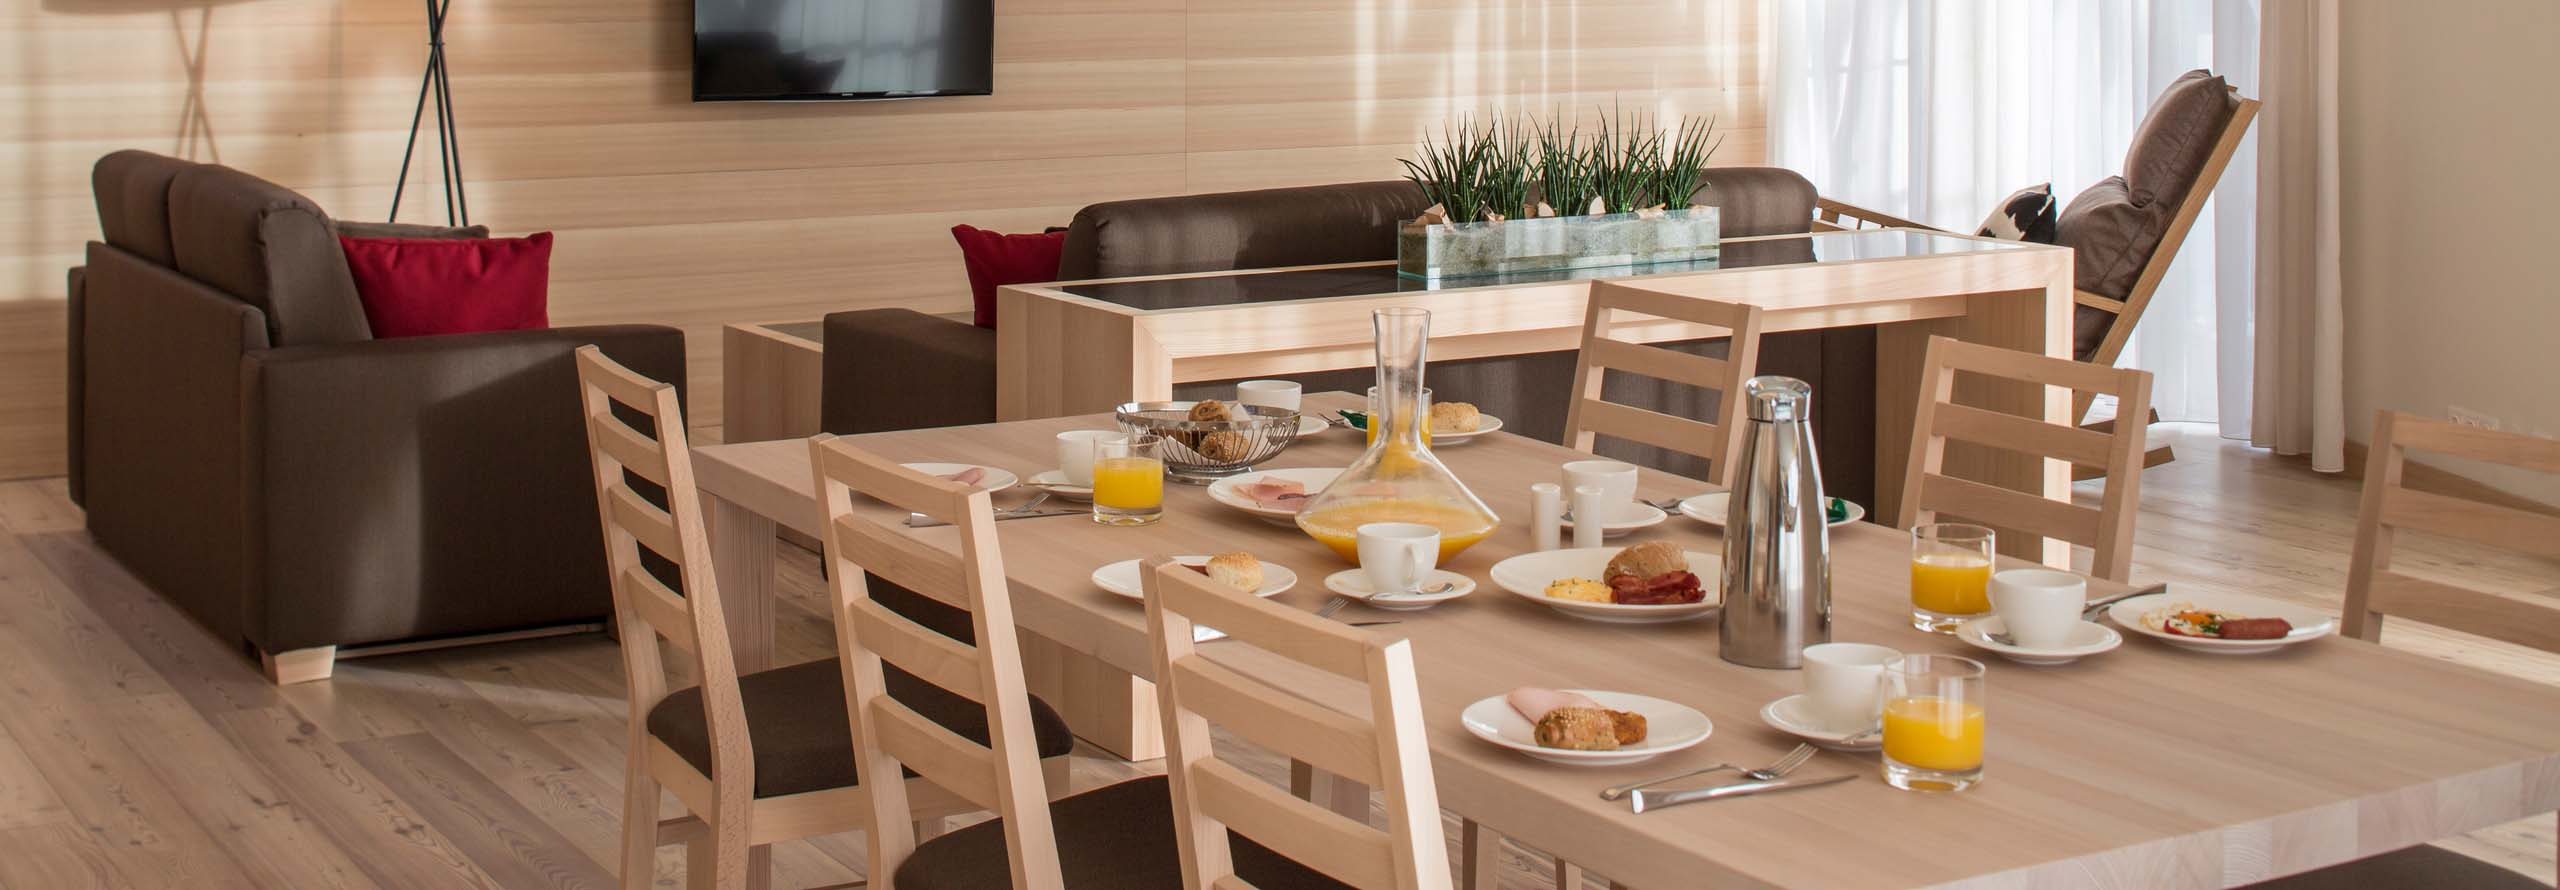 Residences edel:weiss